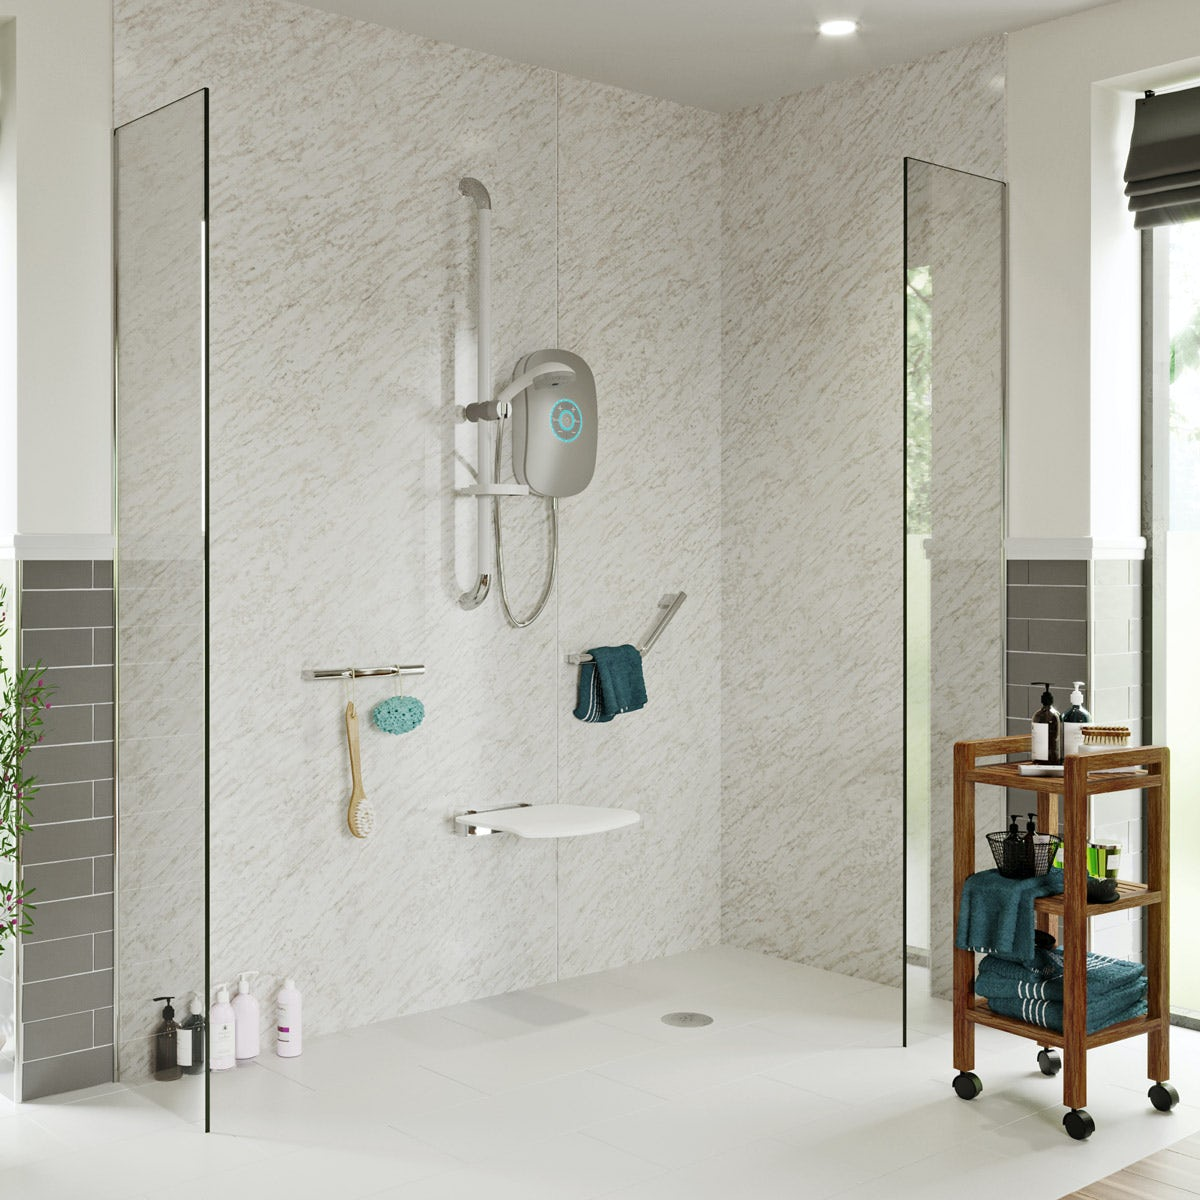 AKW iCare 9.5kw electric shower silver - Sold by Victoria Plum